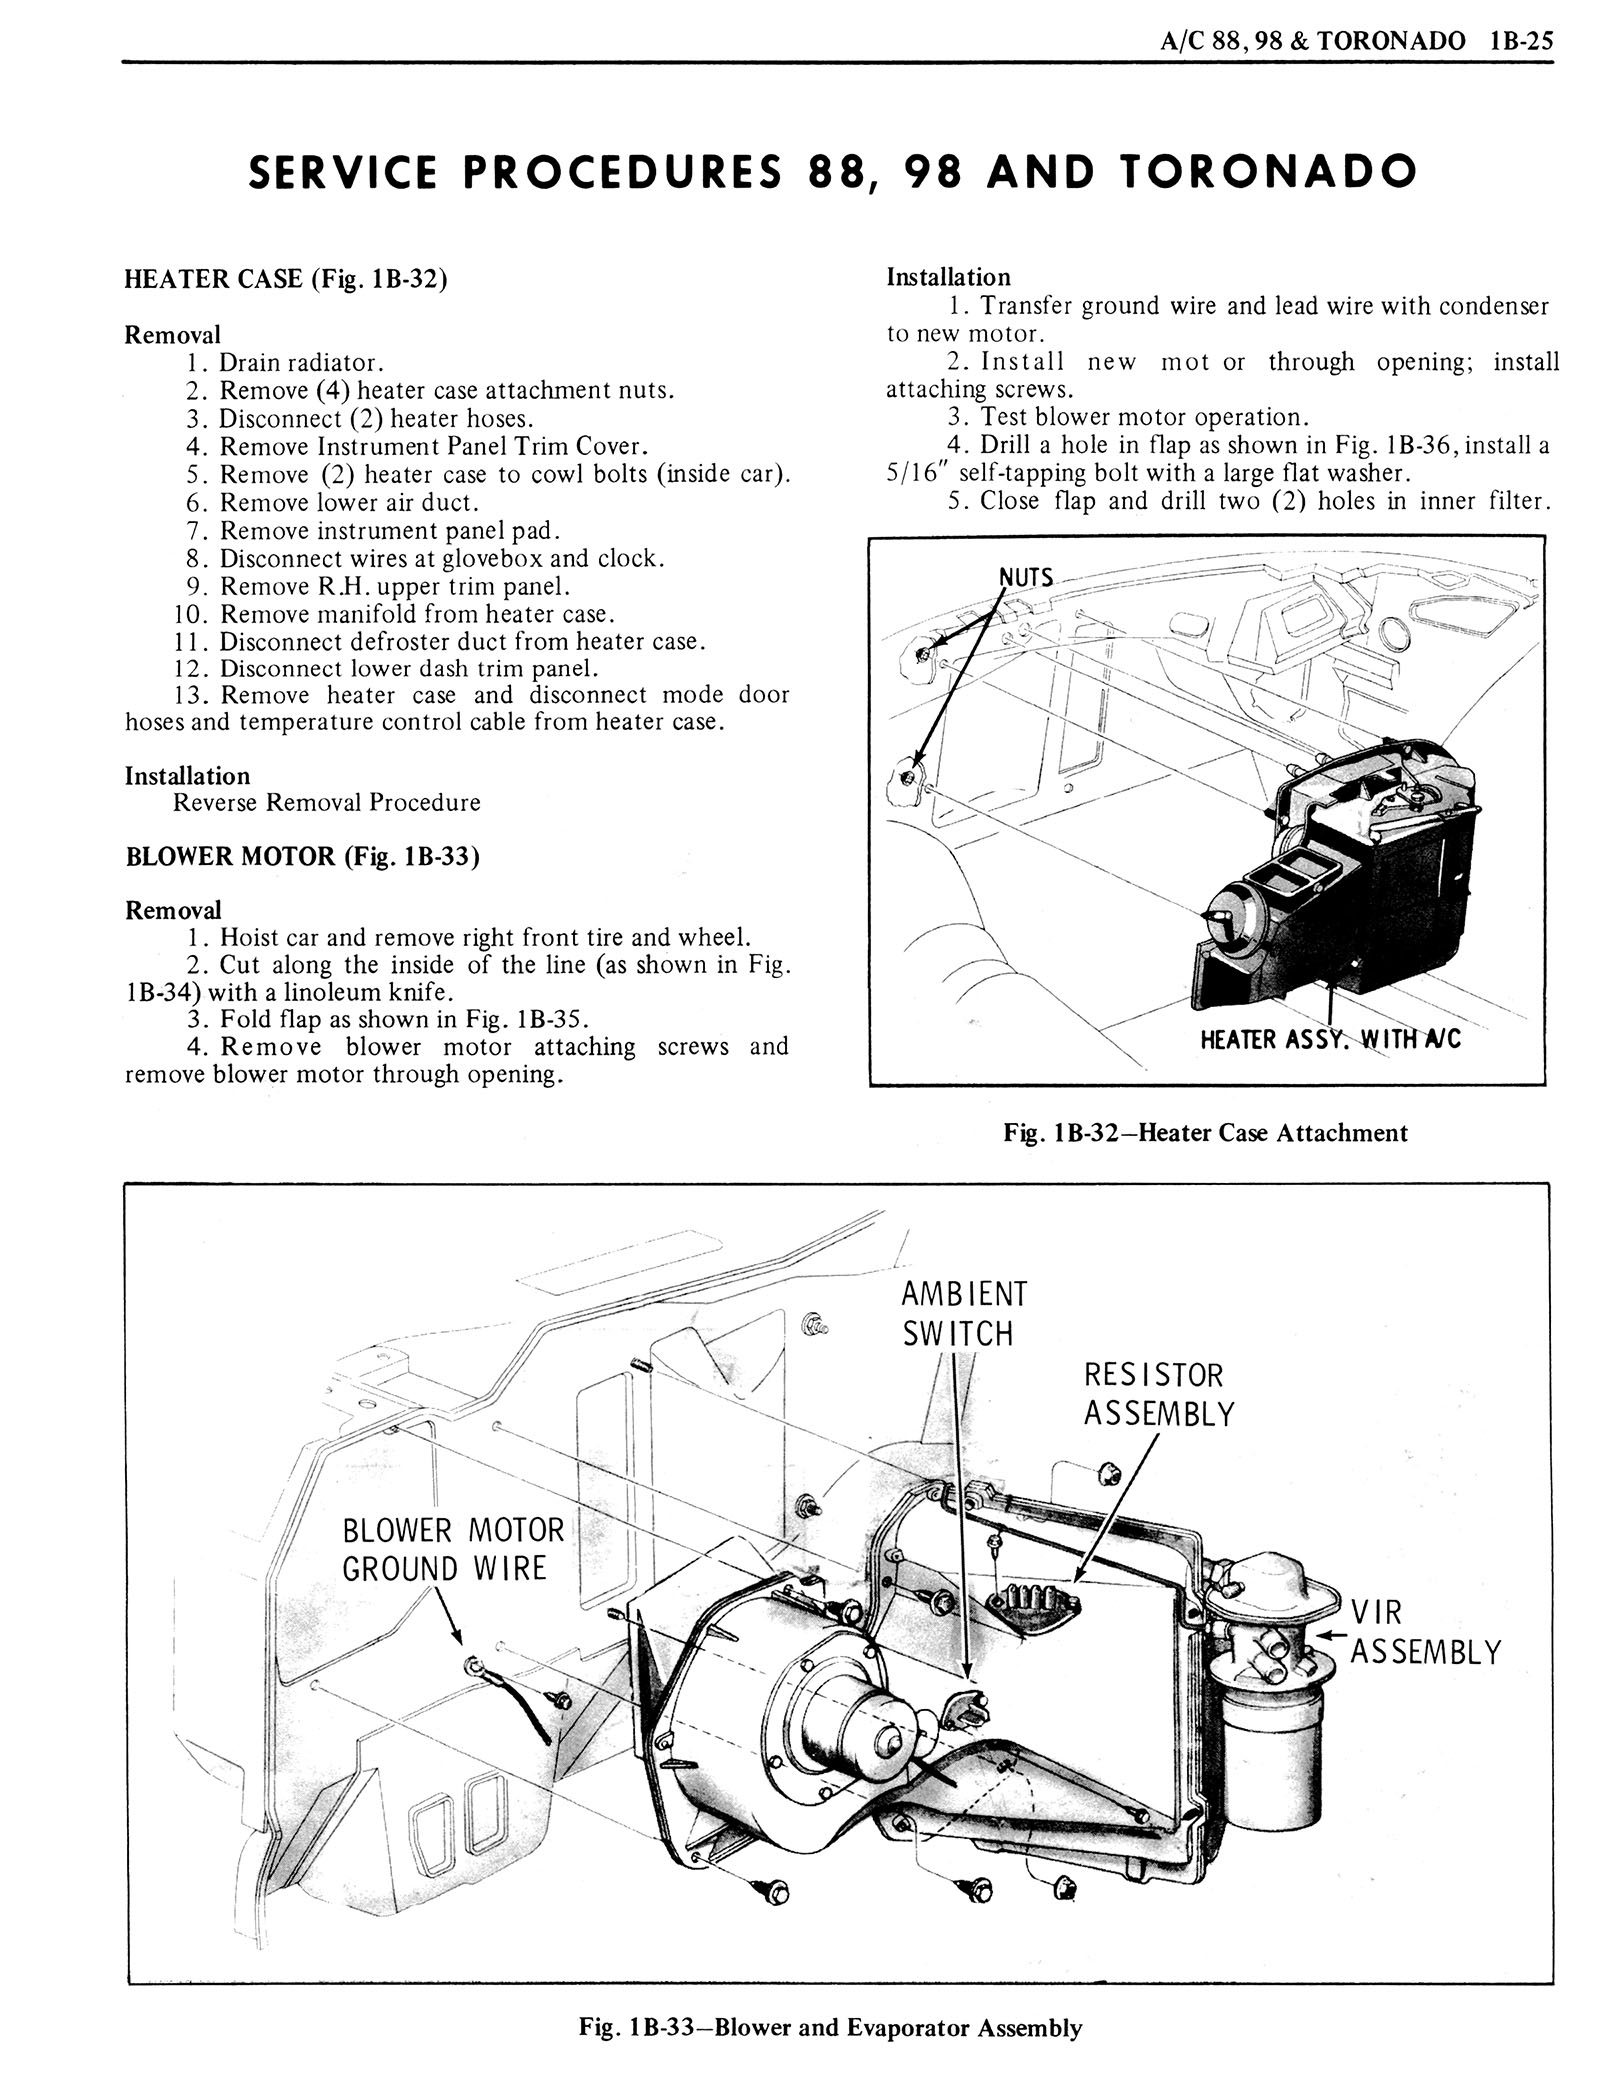 1976 Oldsmobile Service Manual page 123 of 1390